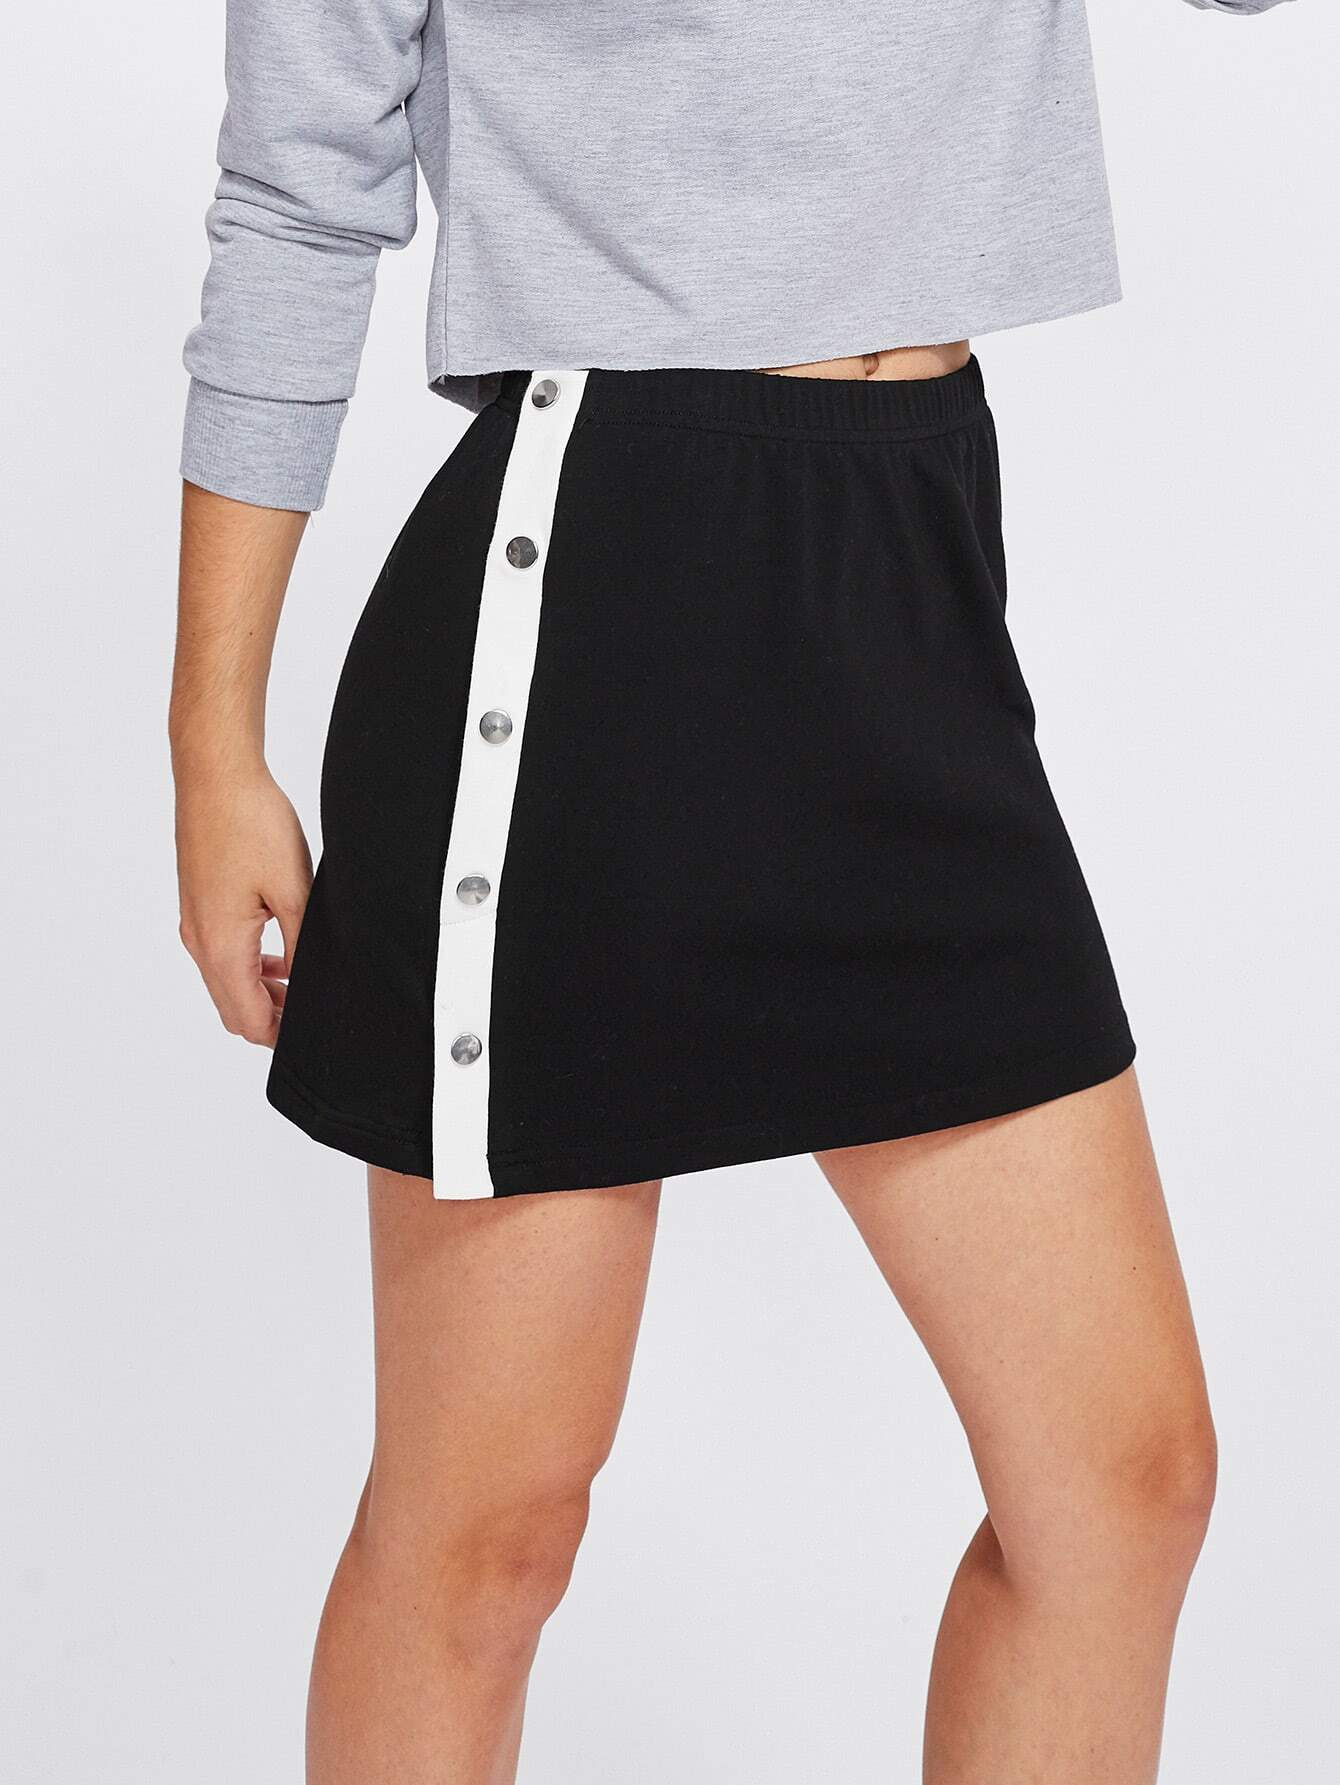 Contrast Snap Button Side Knit Skirt